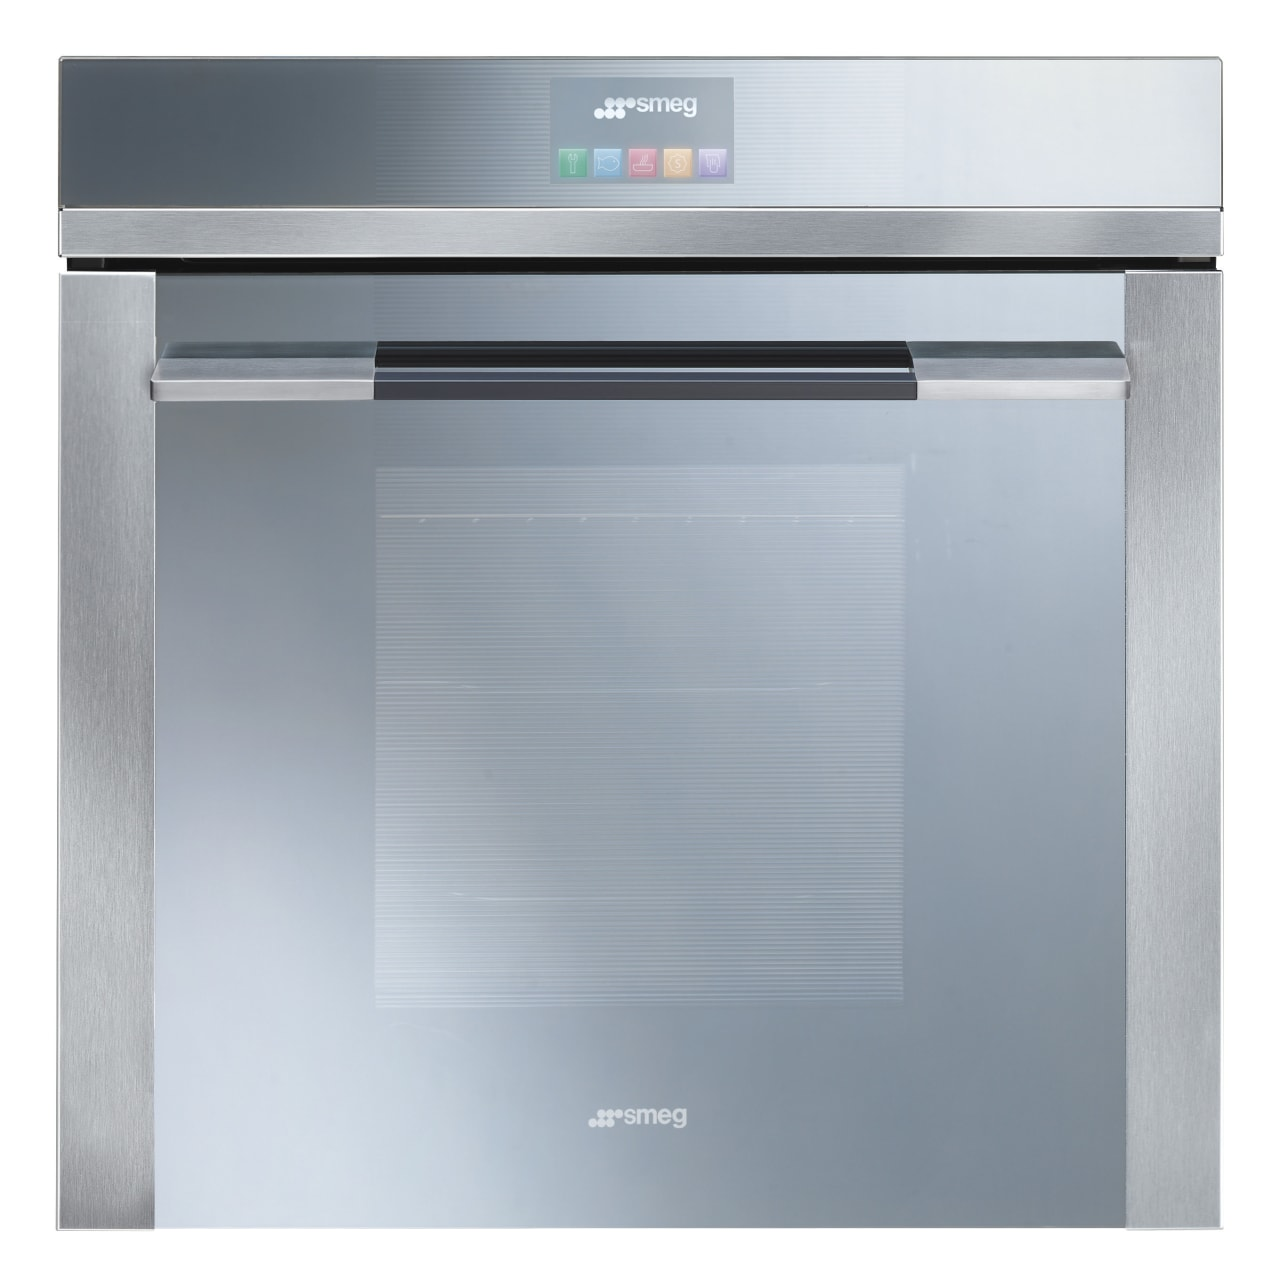 Smeg Linear SFPA140 multifunction oven home appliance, kitchen appliance, oven, product, product design, gray